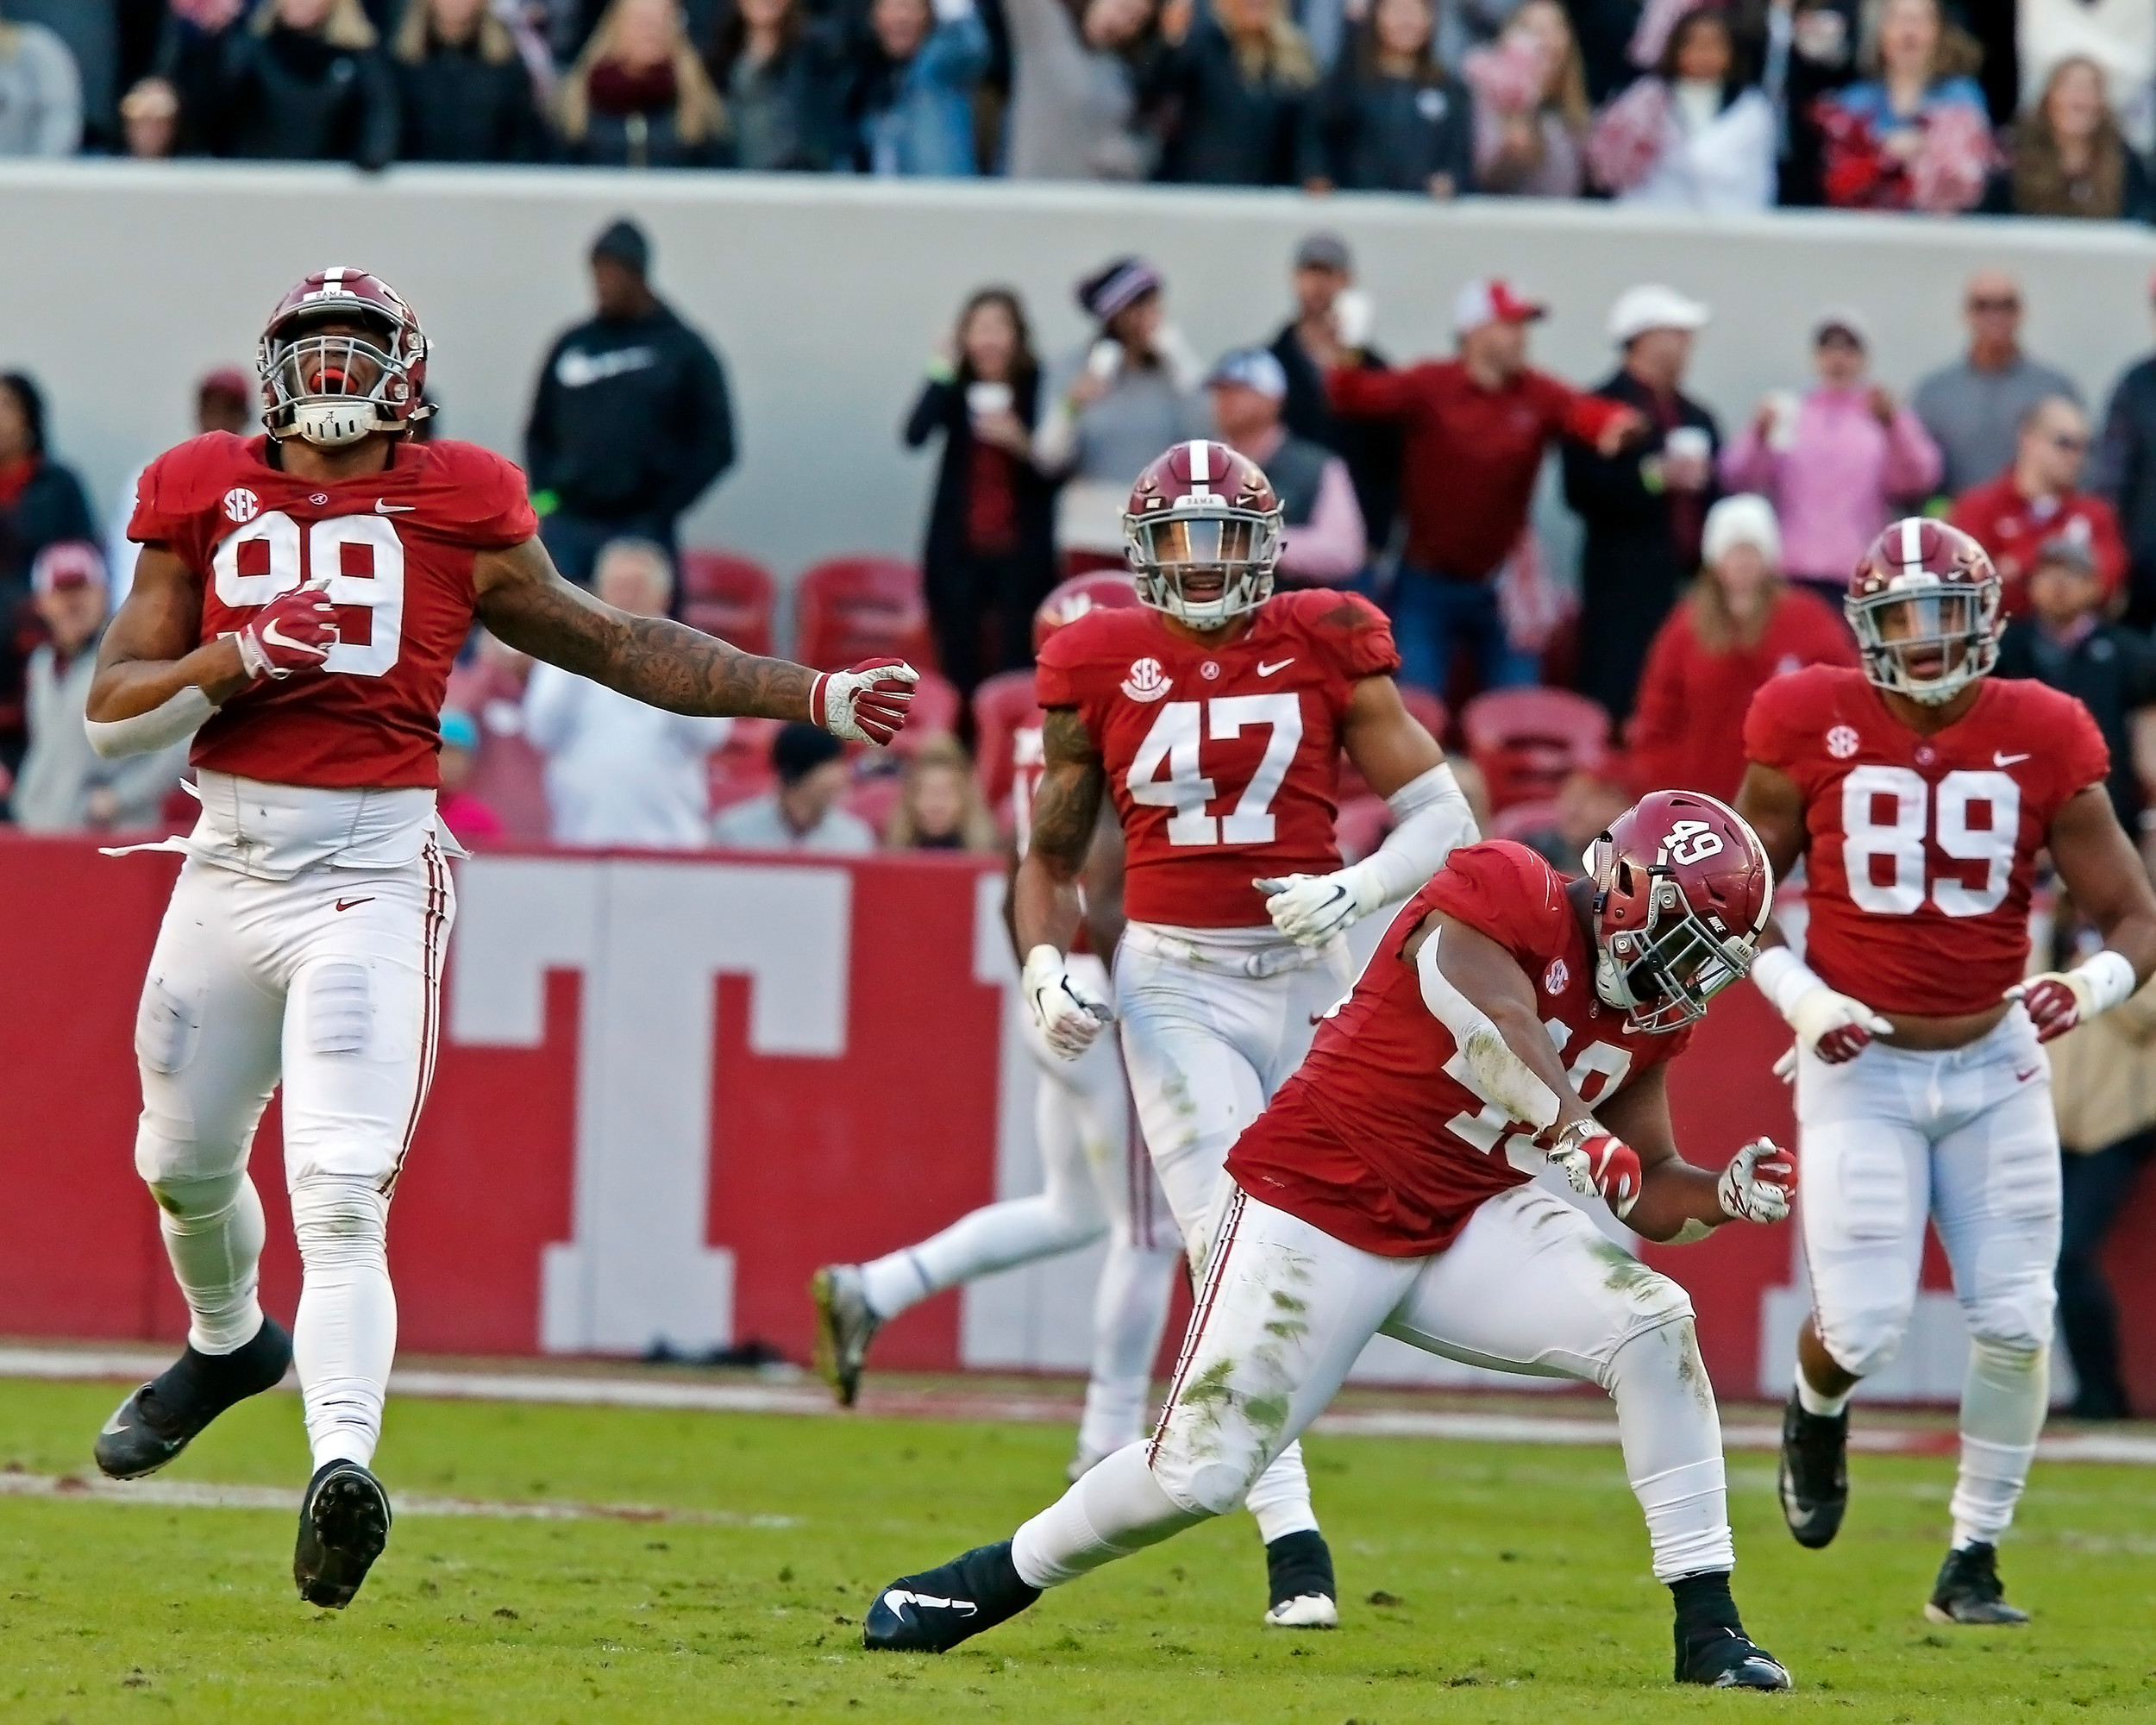 Alabama Crimson Tide's defense had plenty of plays for celebration during the game between Mississippi State and the University of Alabama at Bryant-Denny Stadium in Tuscaloosa, Al. Credit: Jason Clark / Daily Mountain Eagle